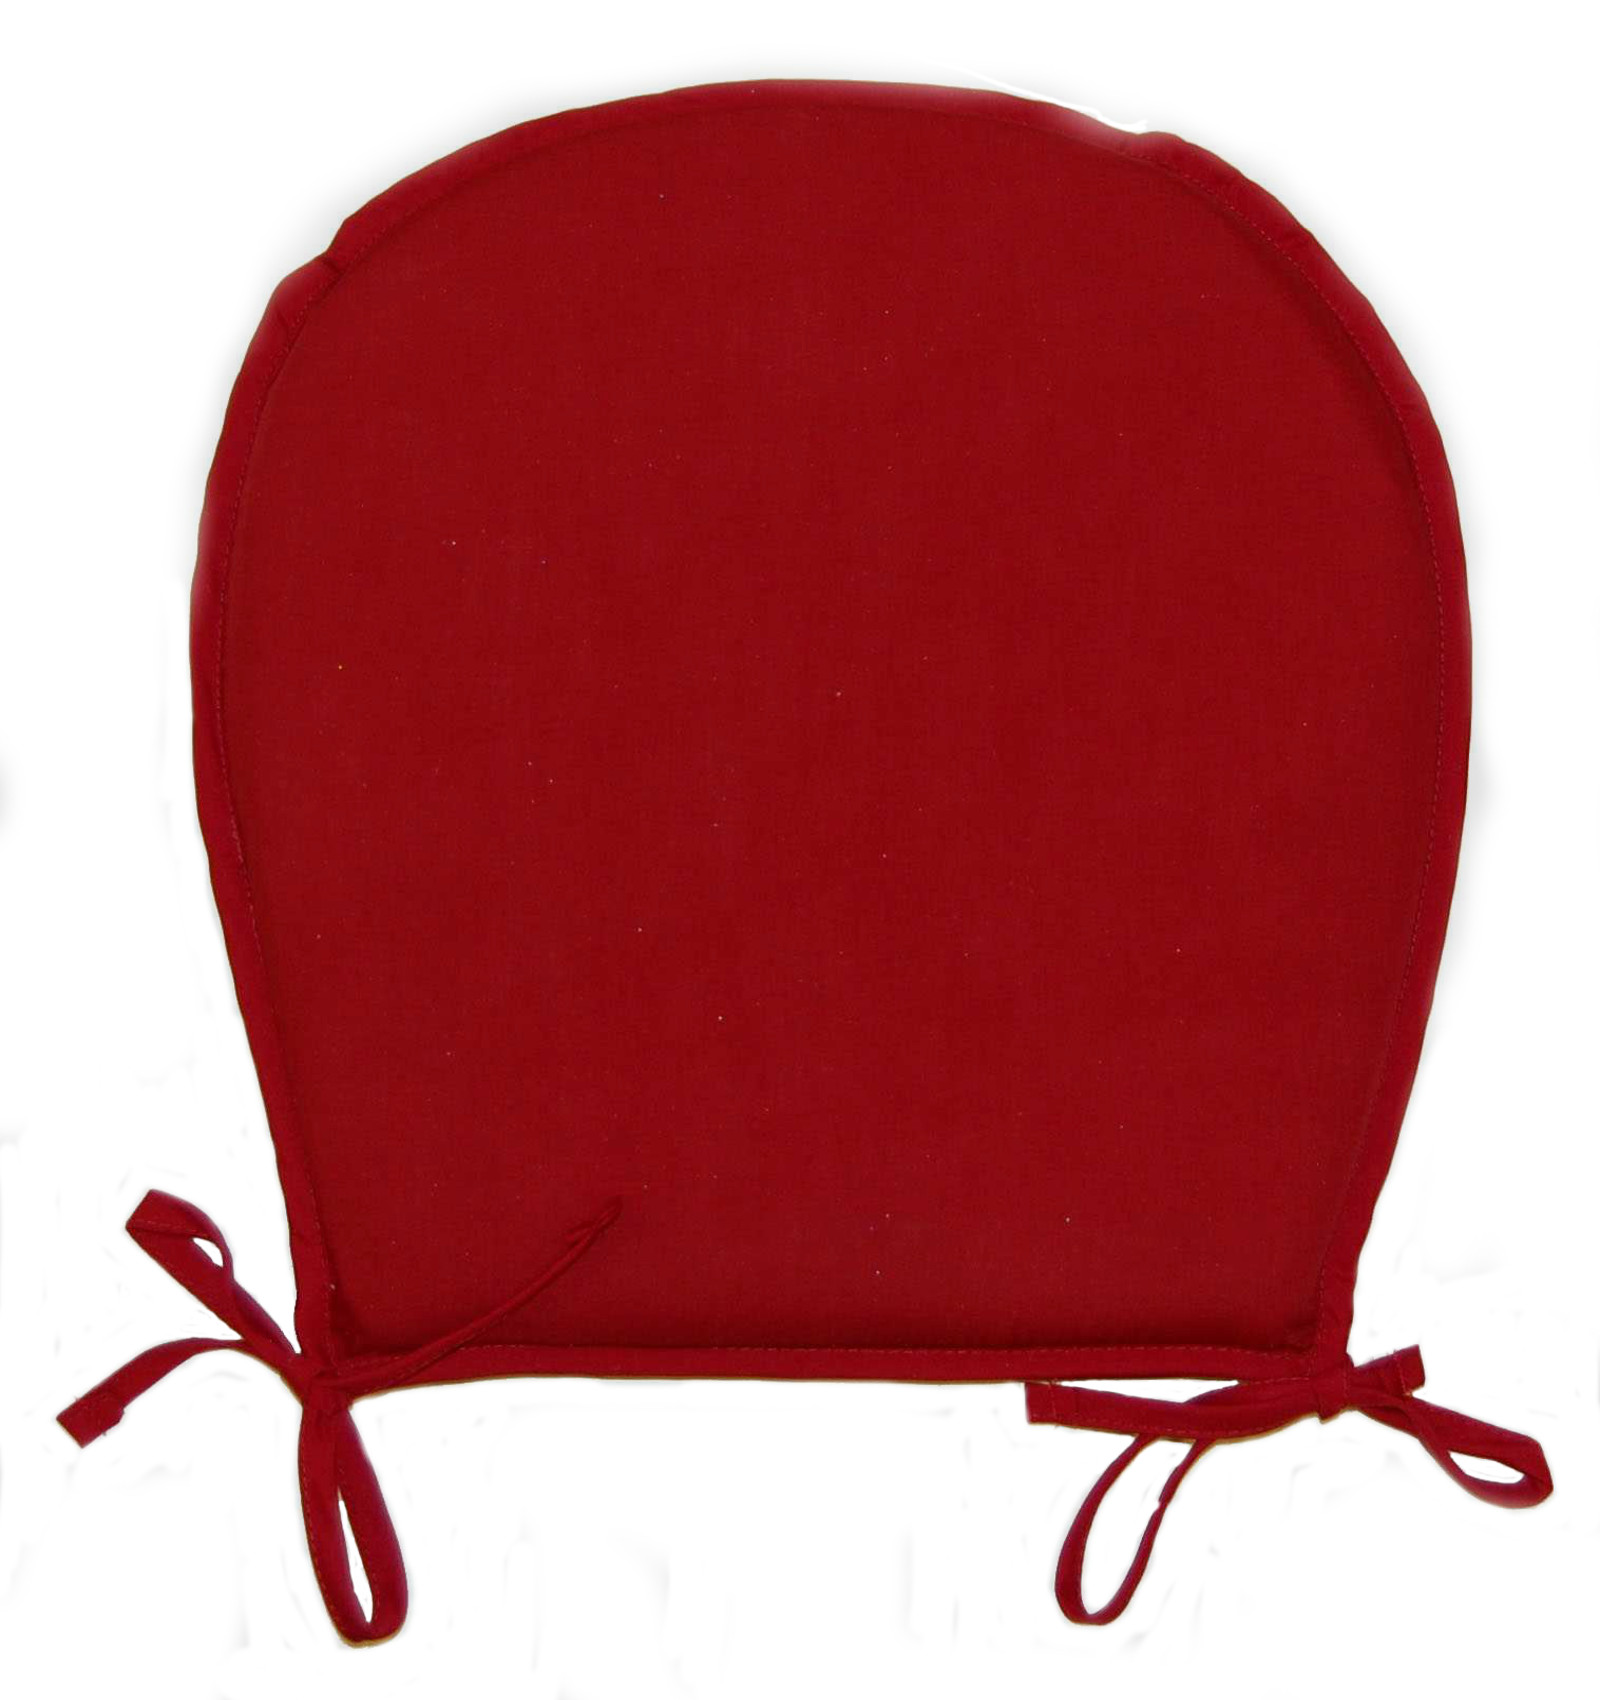 Dining Room Chair Covers Round Back Plain Round Seat Pad Outdoor Garden Dining Kitchen Chair